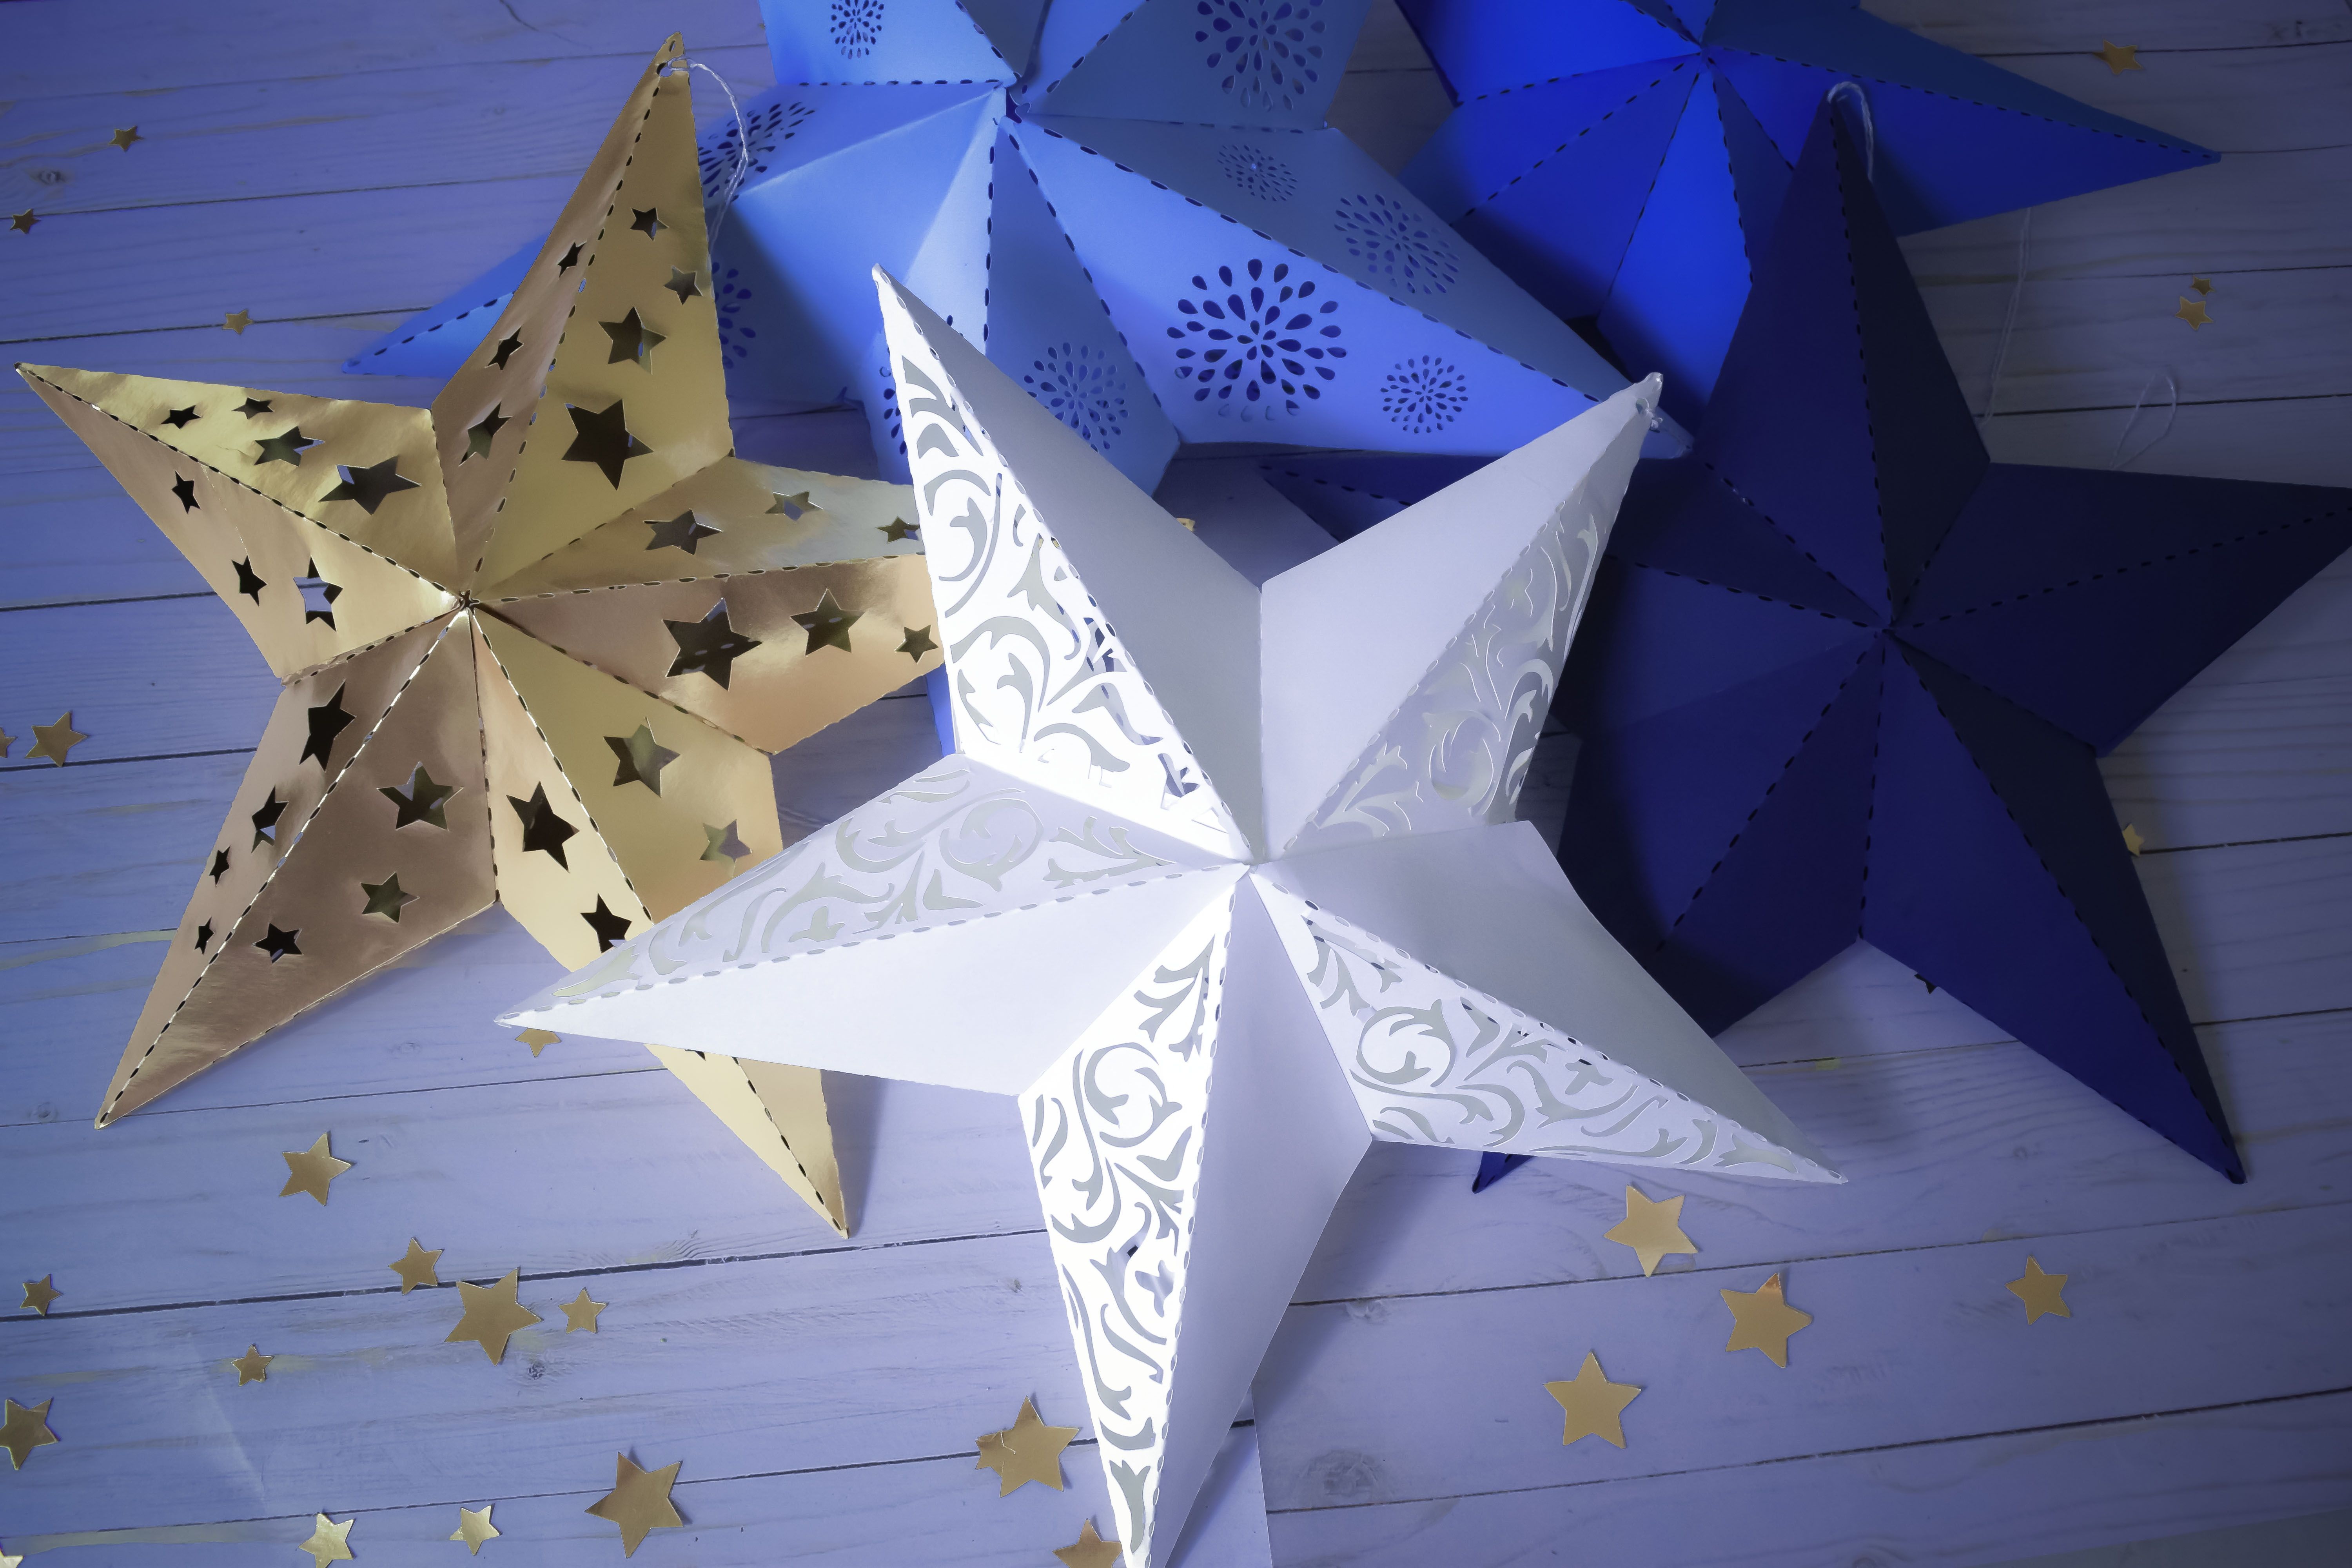 3d Paper Star Template Paper Star Instructions And Free Template Paper Star Lanterns 3d Paper Star Paper Stars